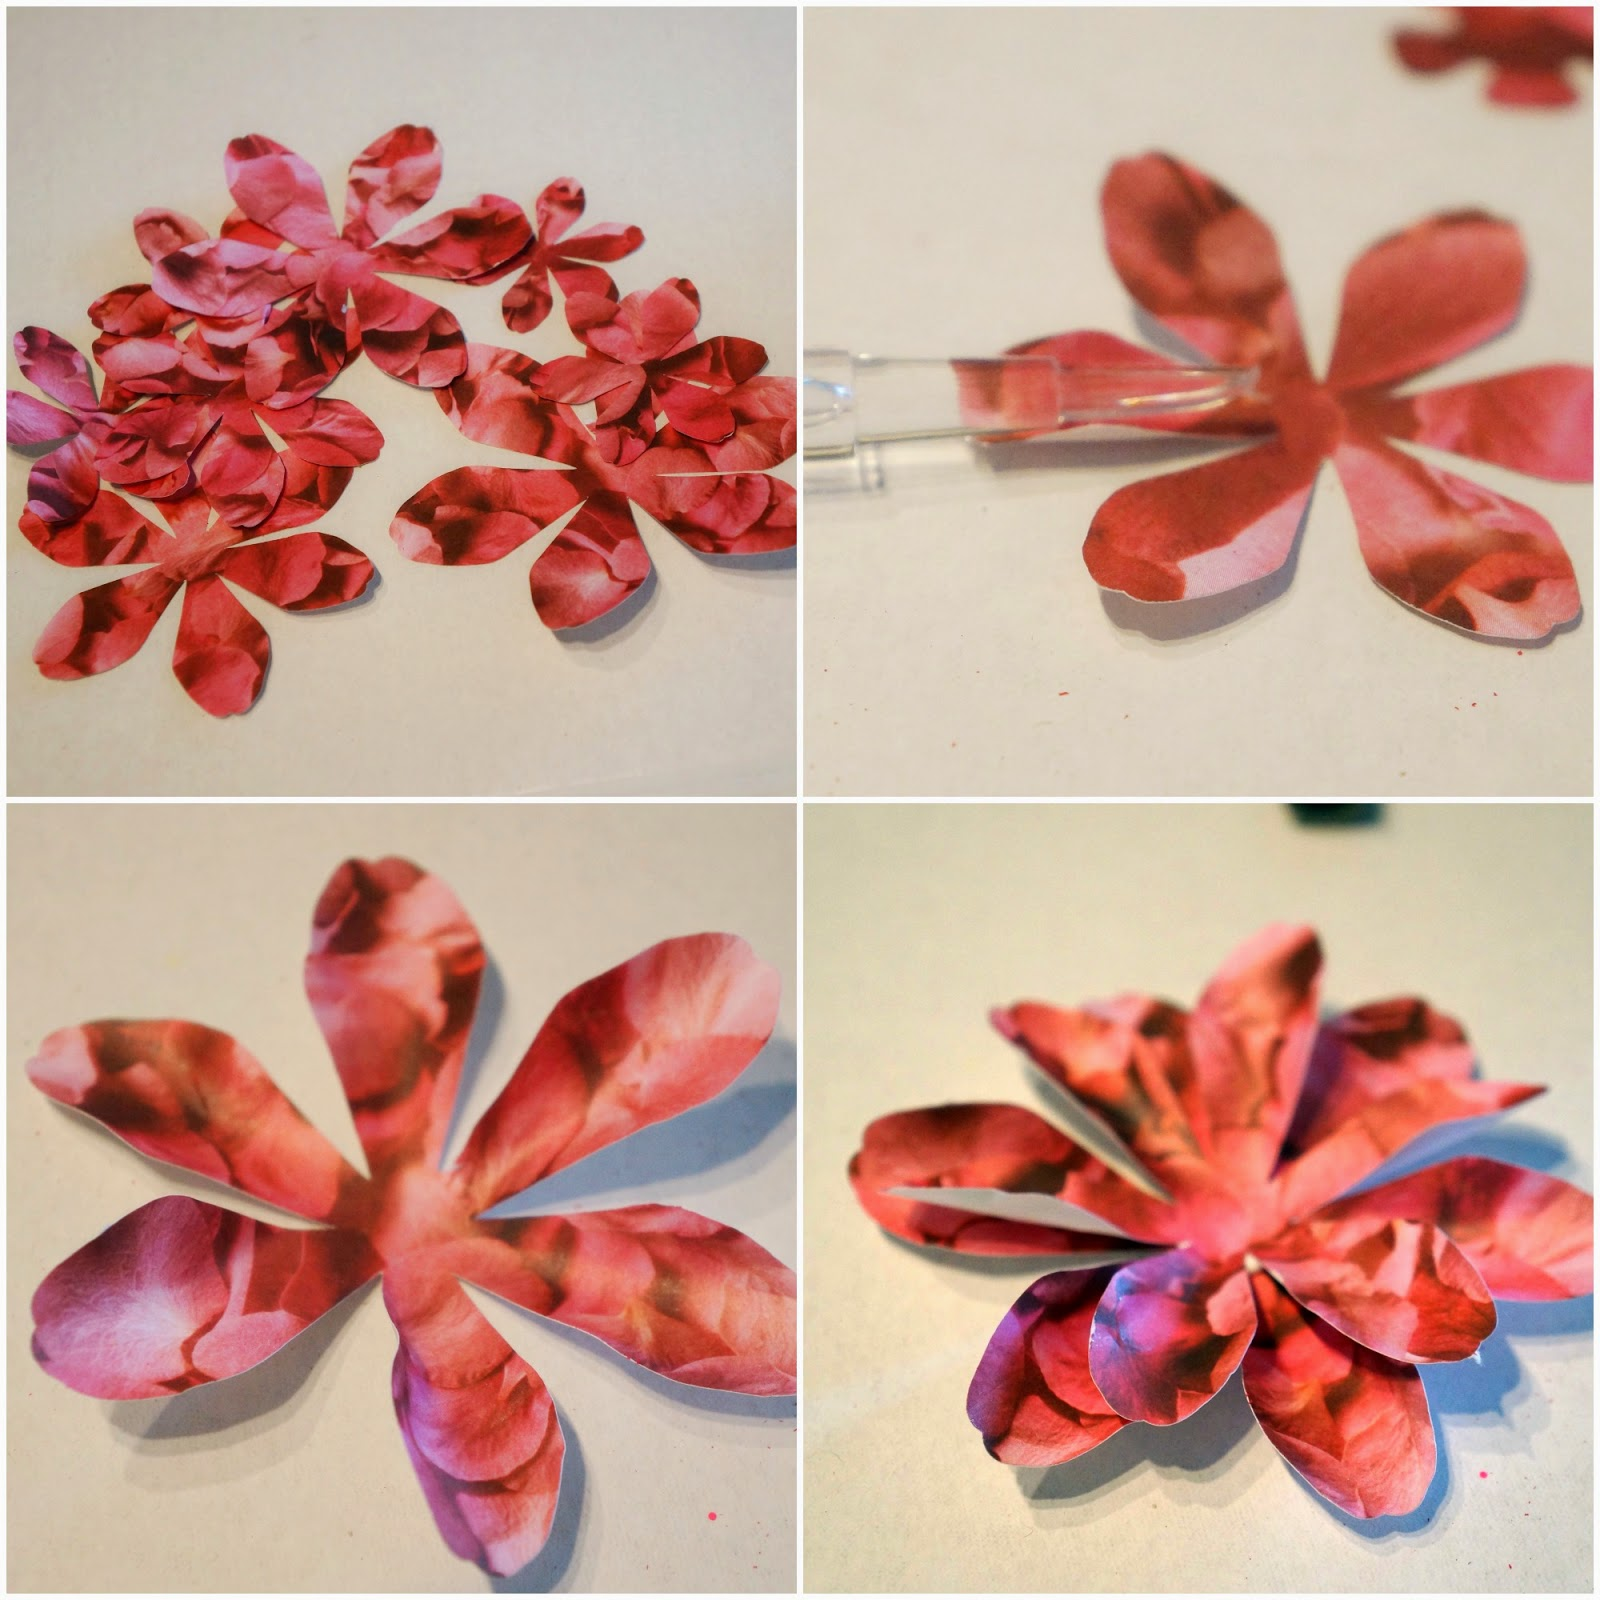 Snaps of Ginger DIY Paper Flowers